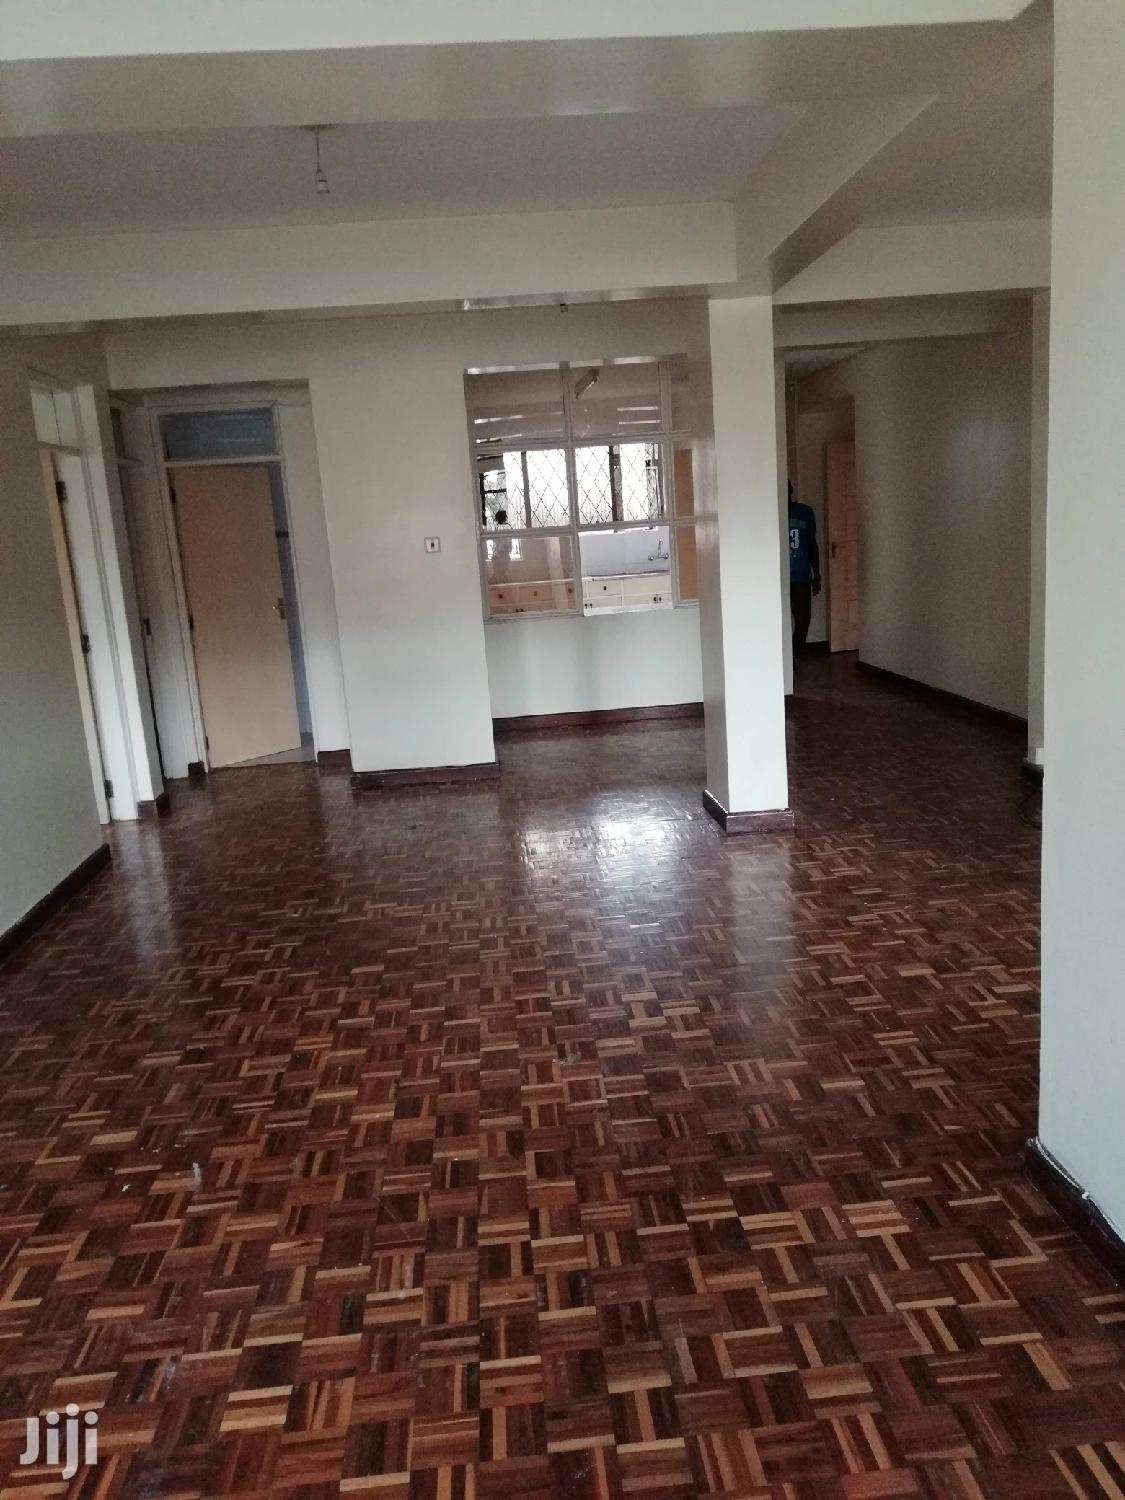 Property World,2/3br Apartment With Pool,Gym And Very Secure | Houses & Apartments For Rent for sale in Kilimani, Nairobi, Kenya